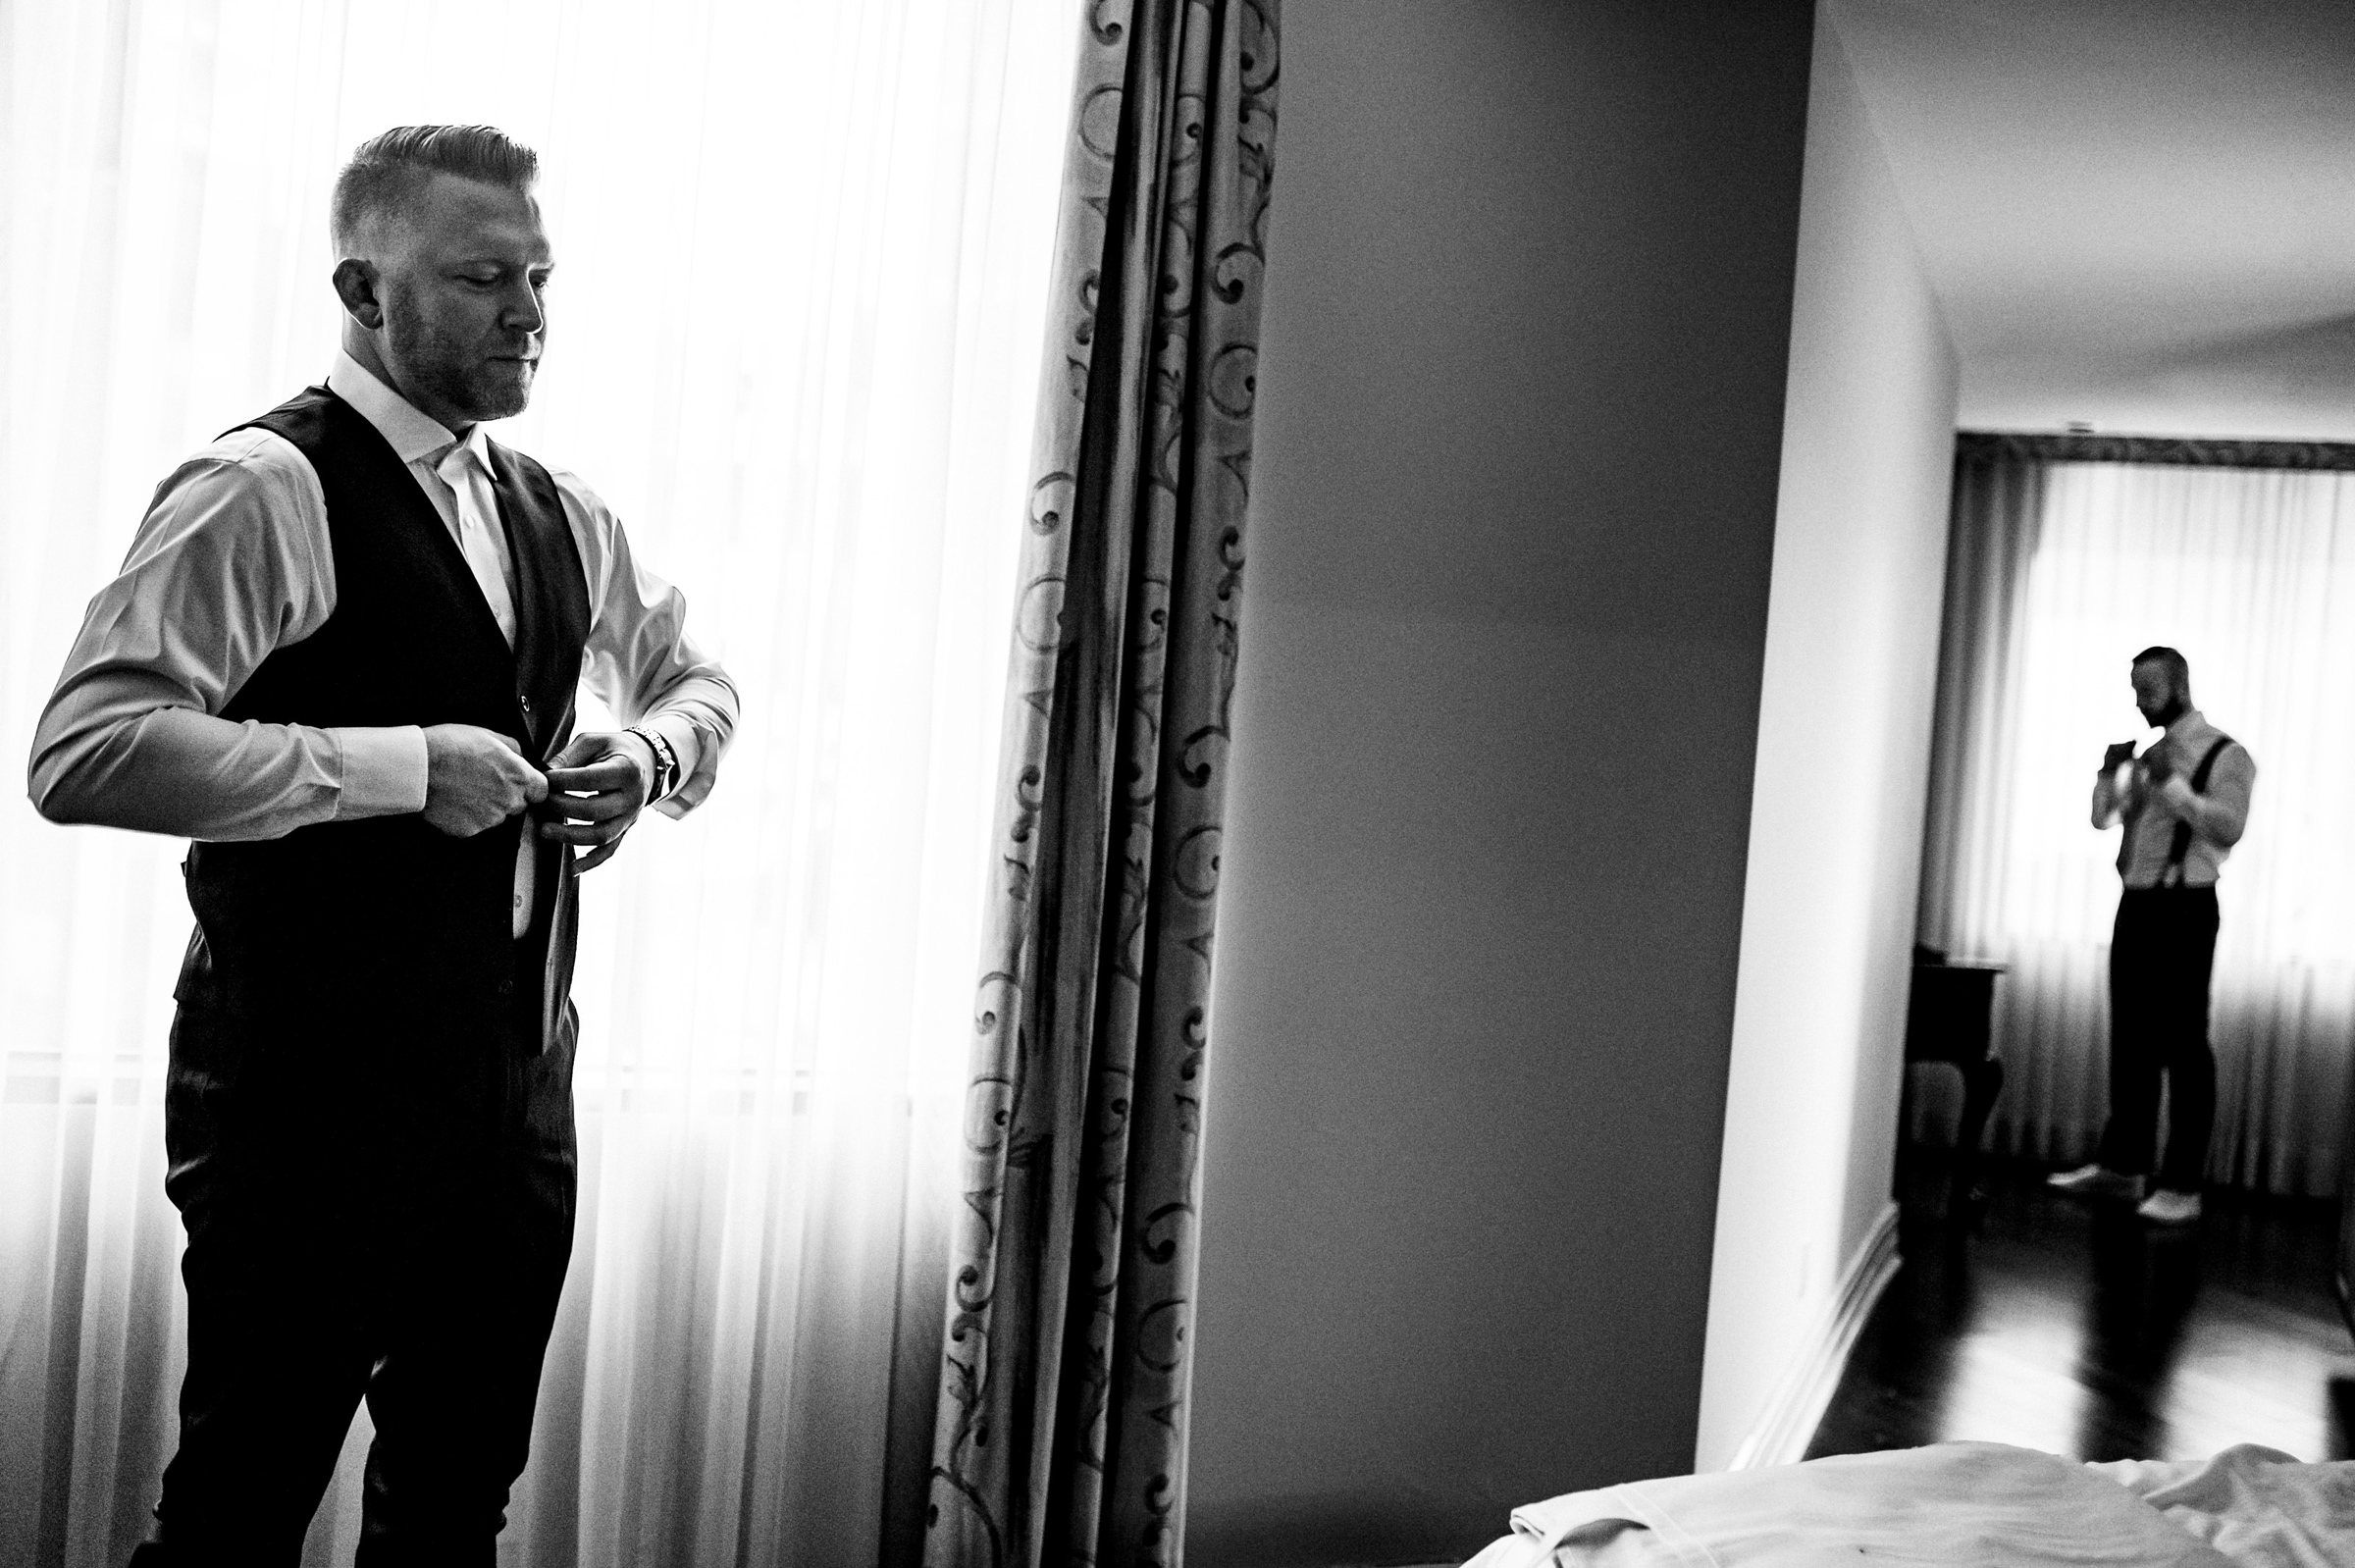 Groom and groomsman getting dressed - photo by Moore Photography